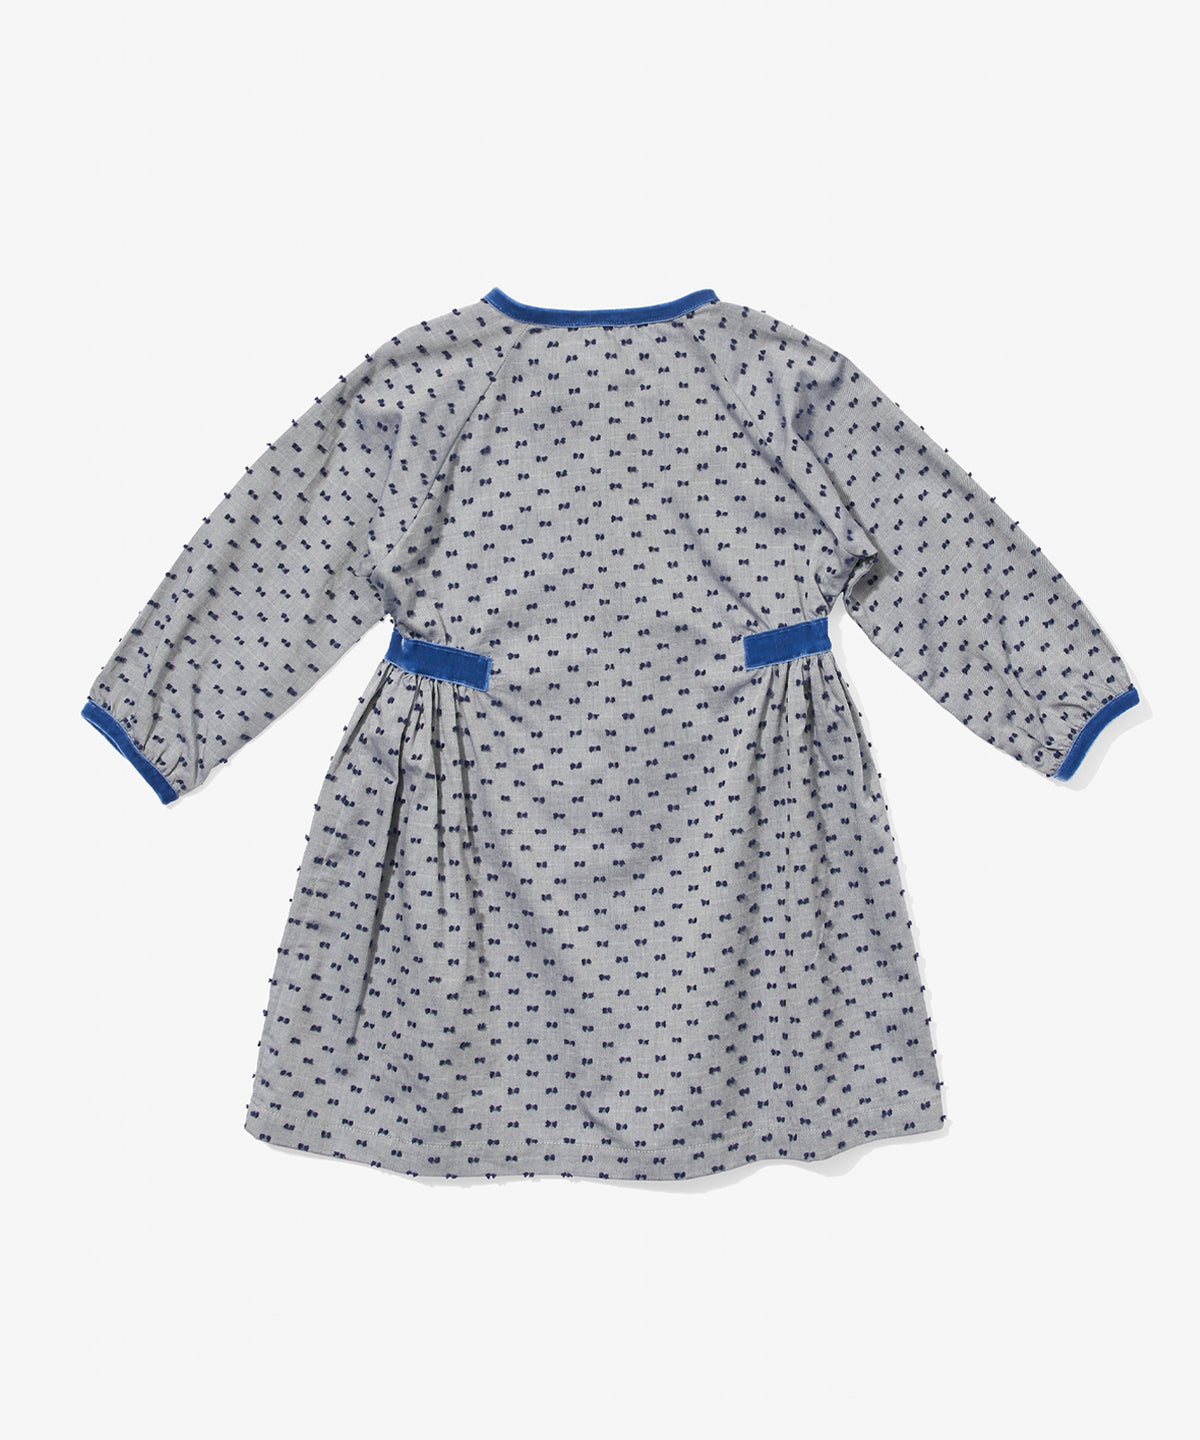 Elizabeth Dress, Navy Swiss Dot